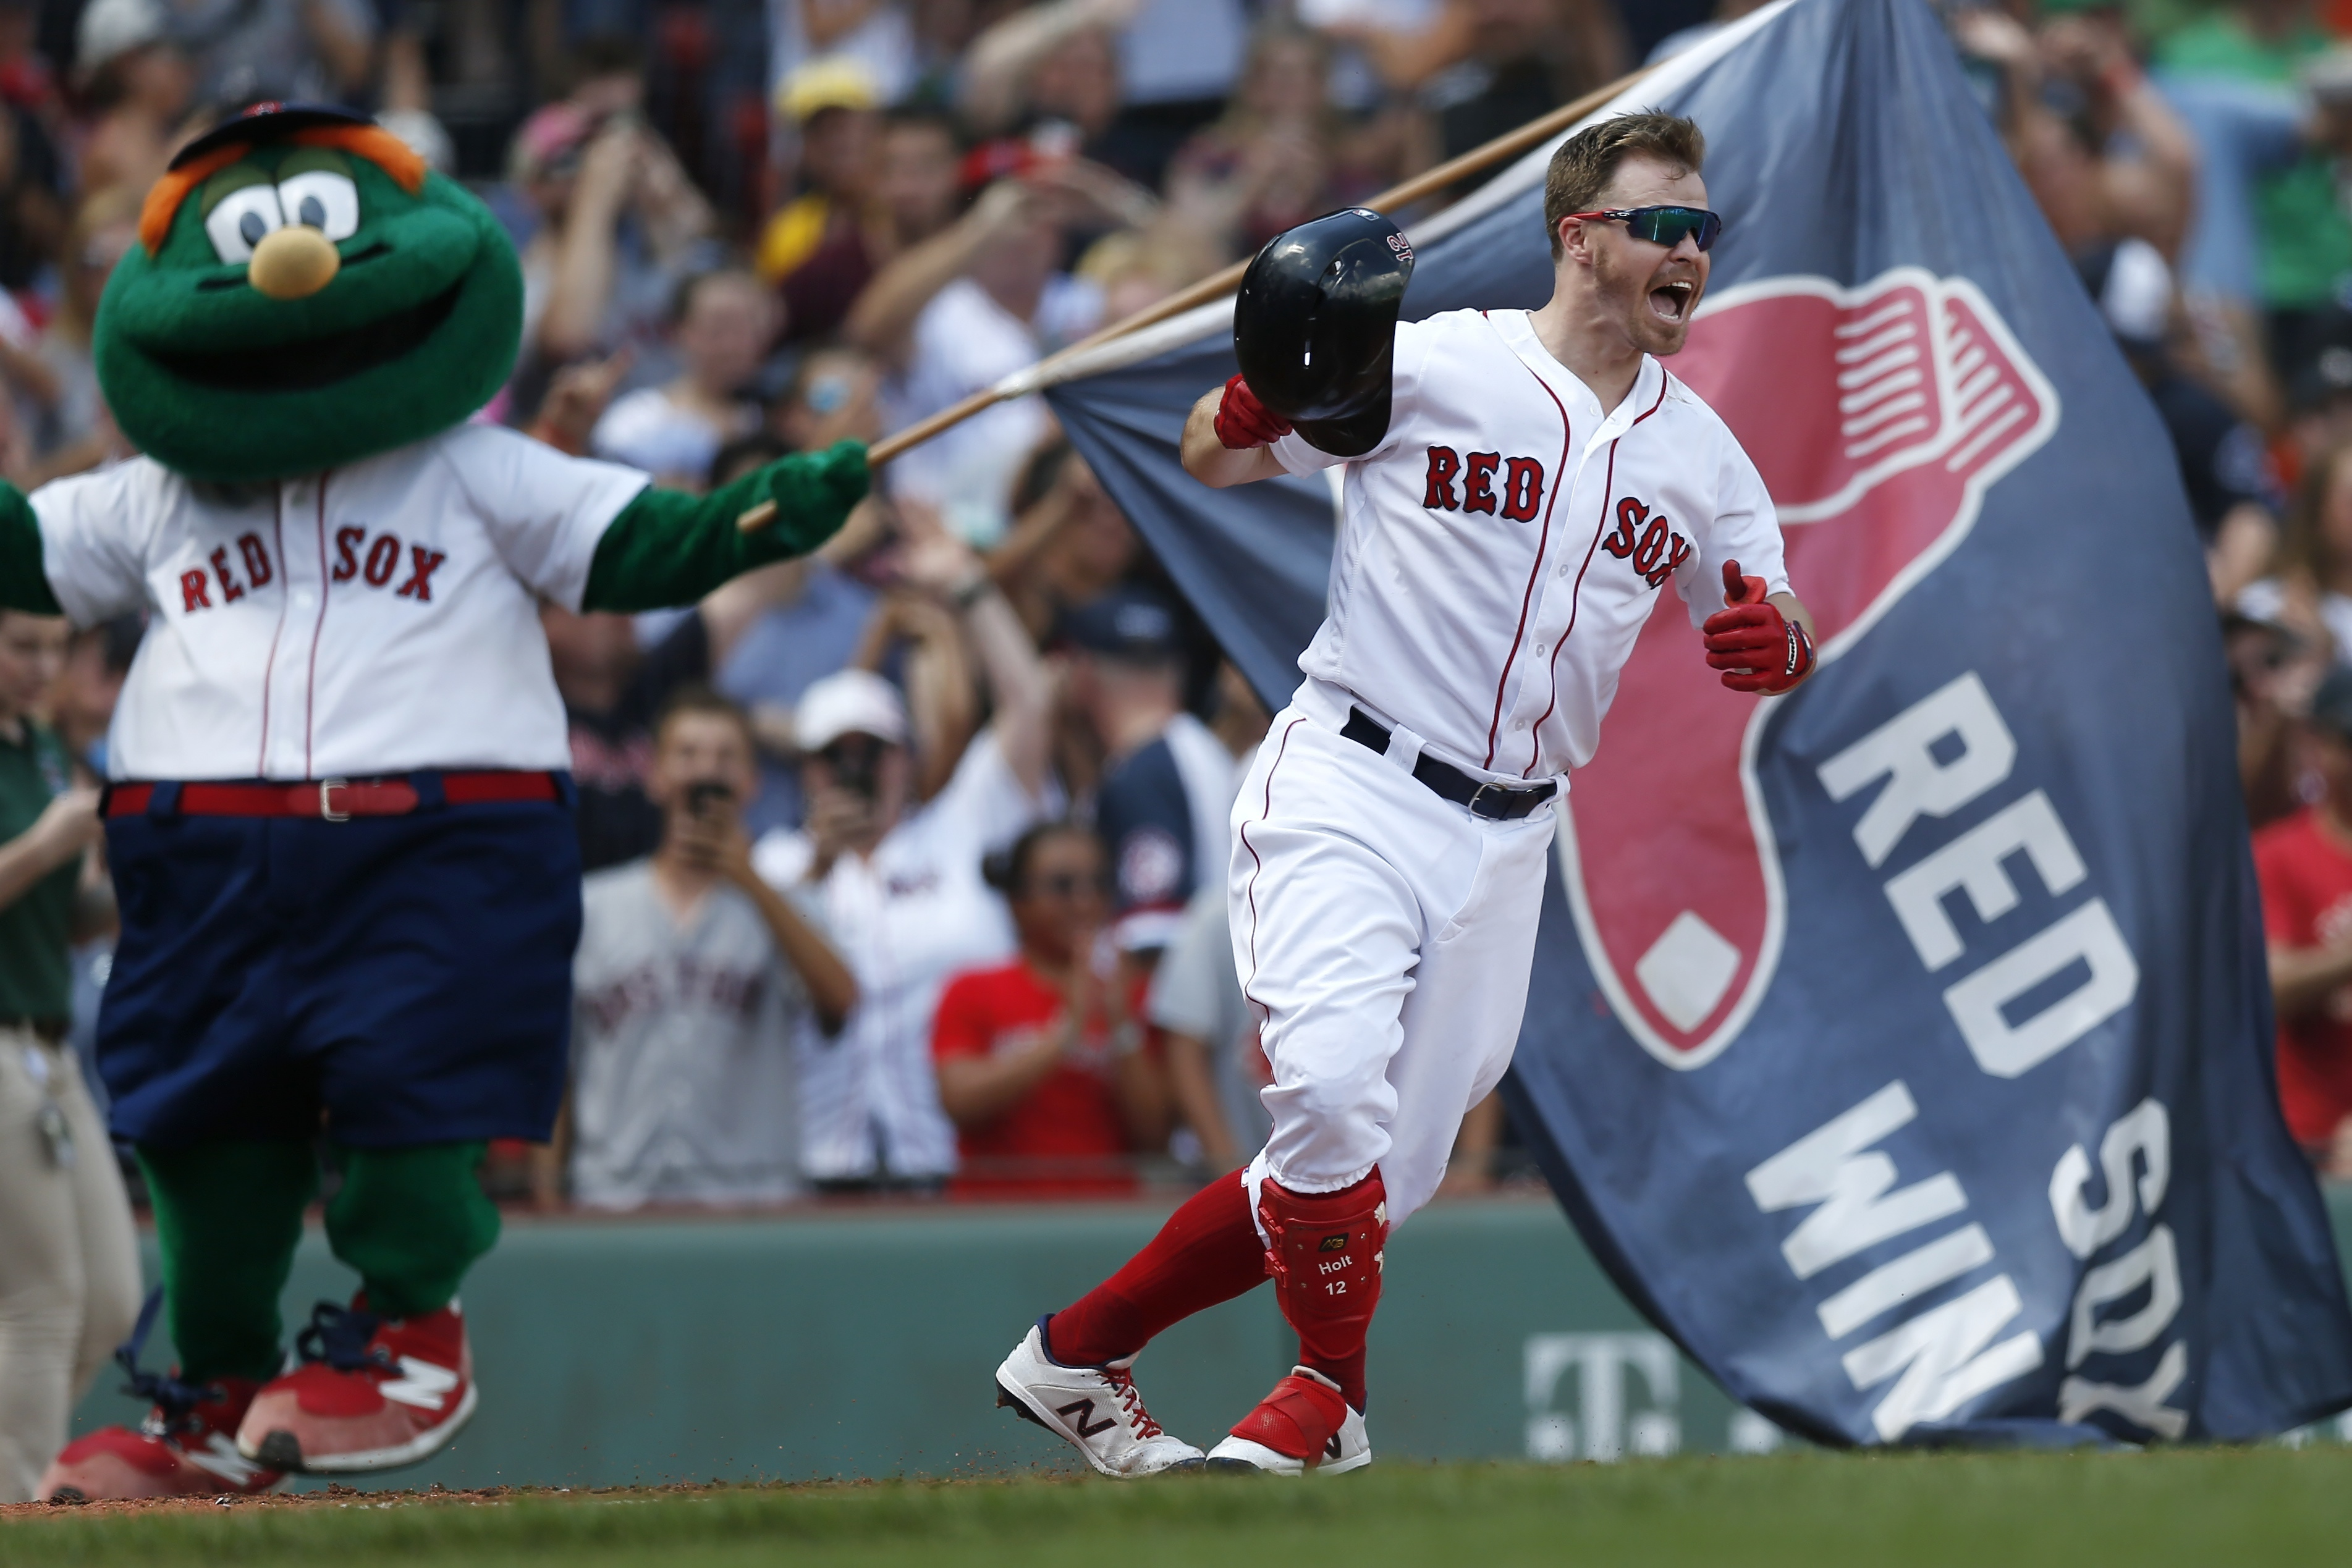 Brock Holt signs with Brewers: Boston Red Sox fan favorite agrees ...